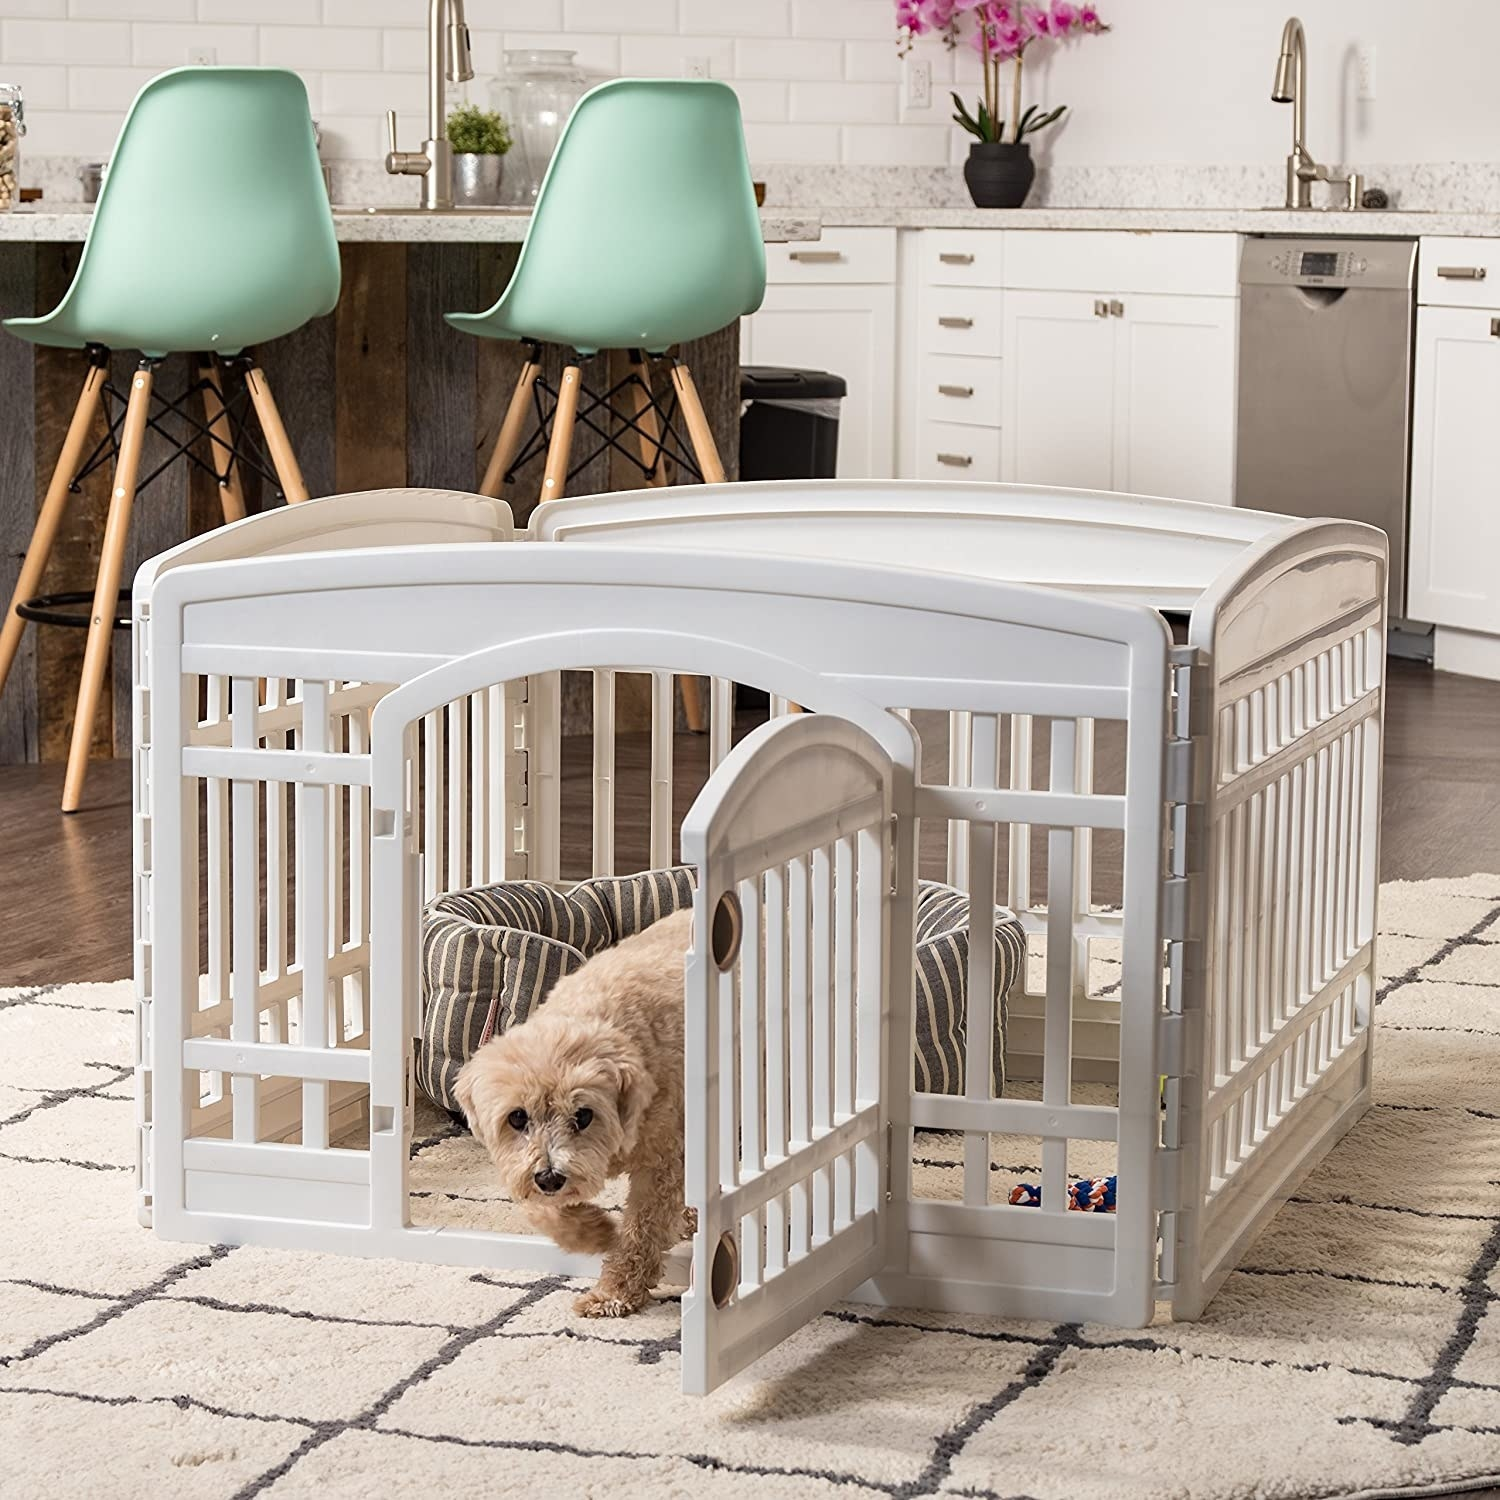 Puppy in the gated playpen